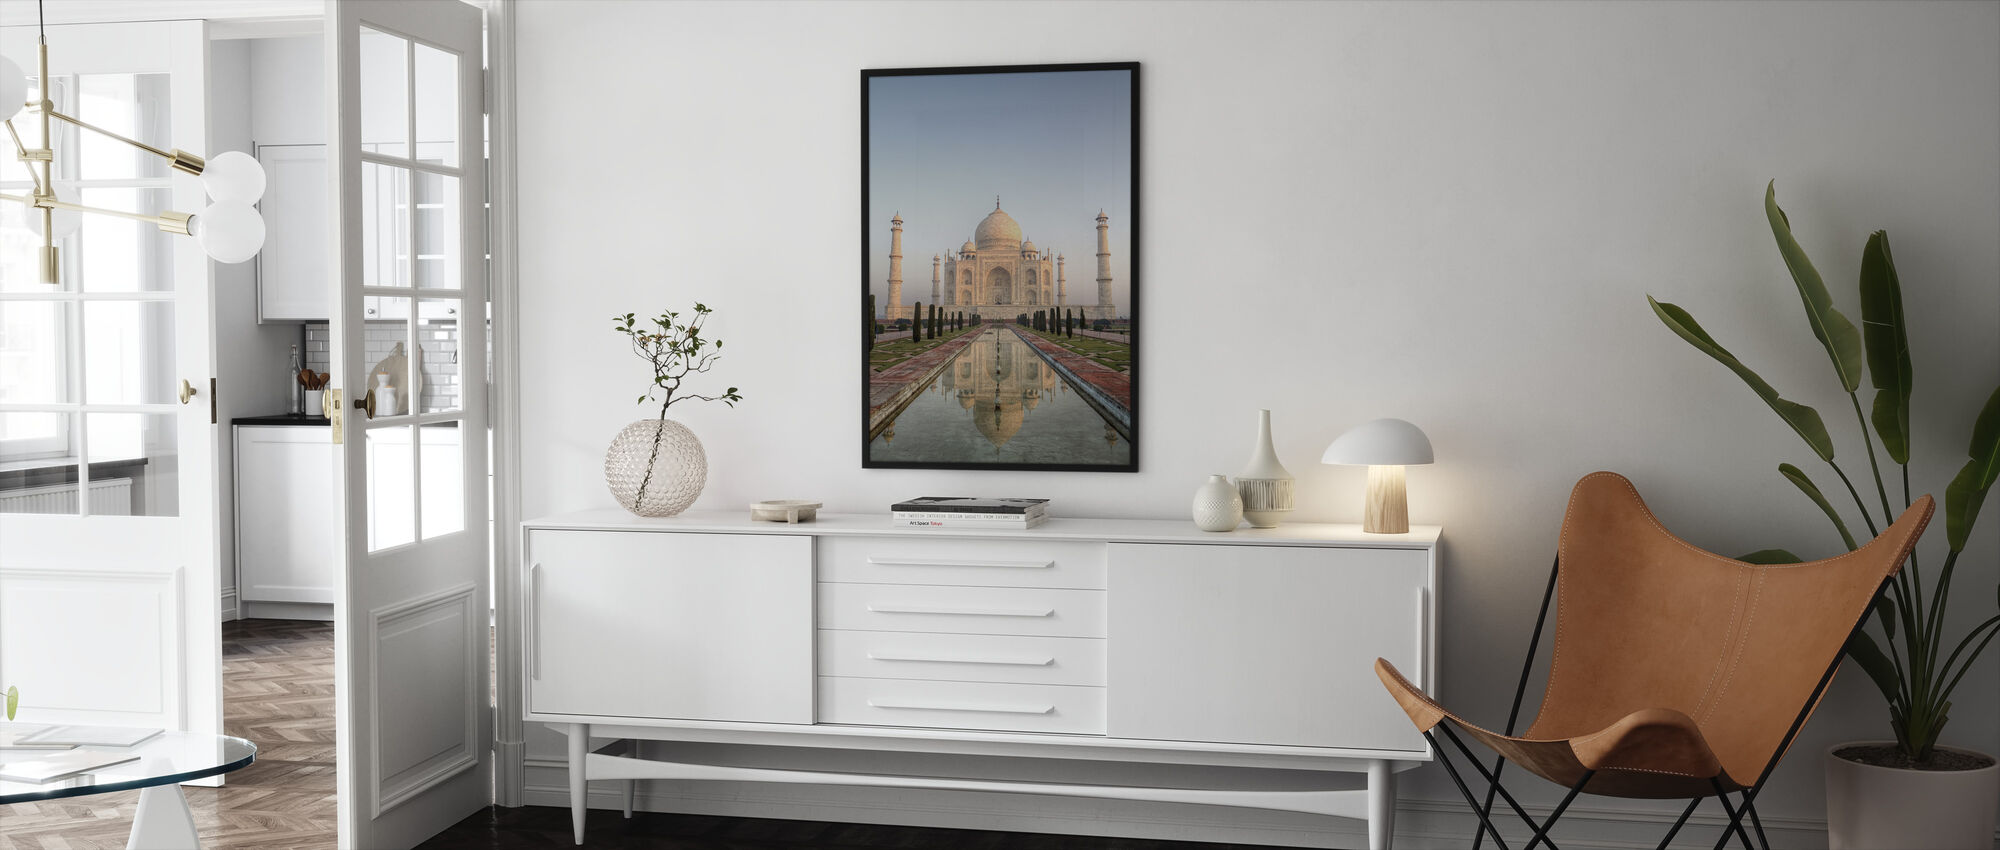 Sunrise at Taj Mahal - Framed print - Living Room